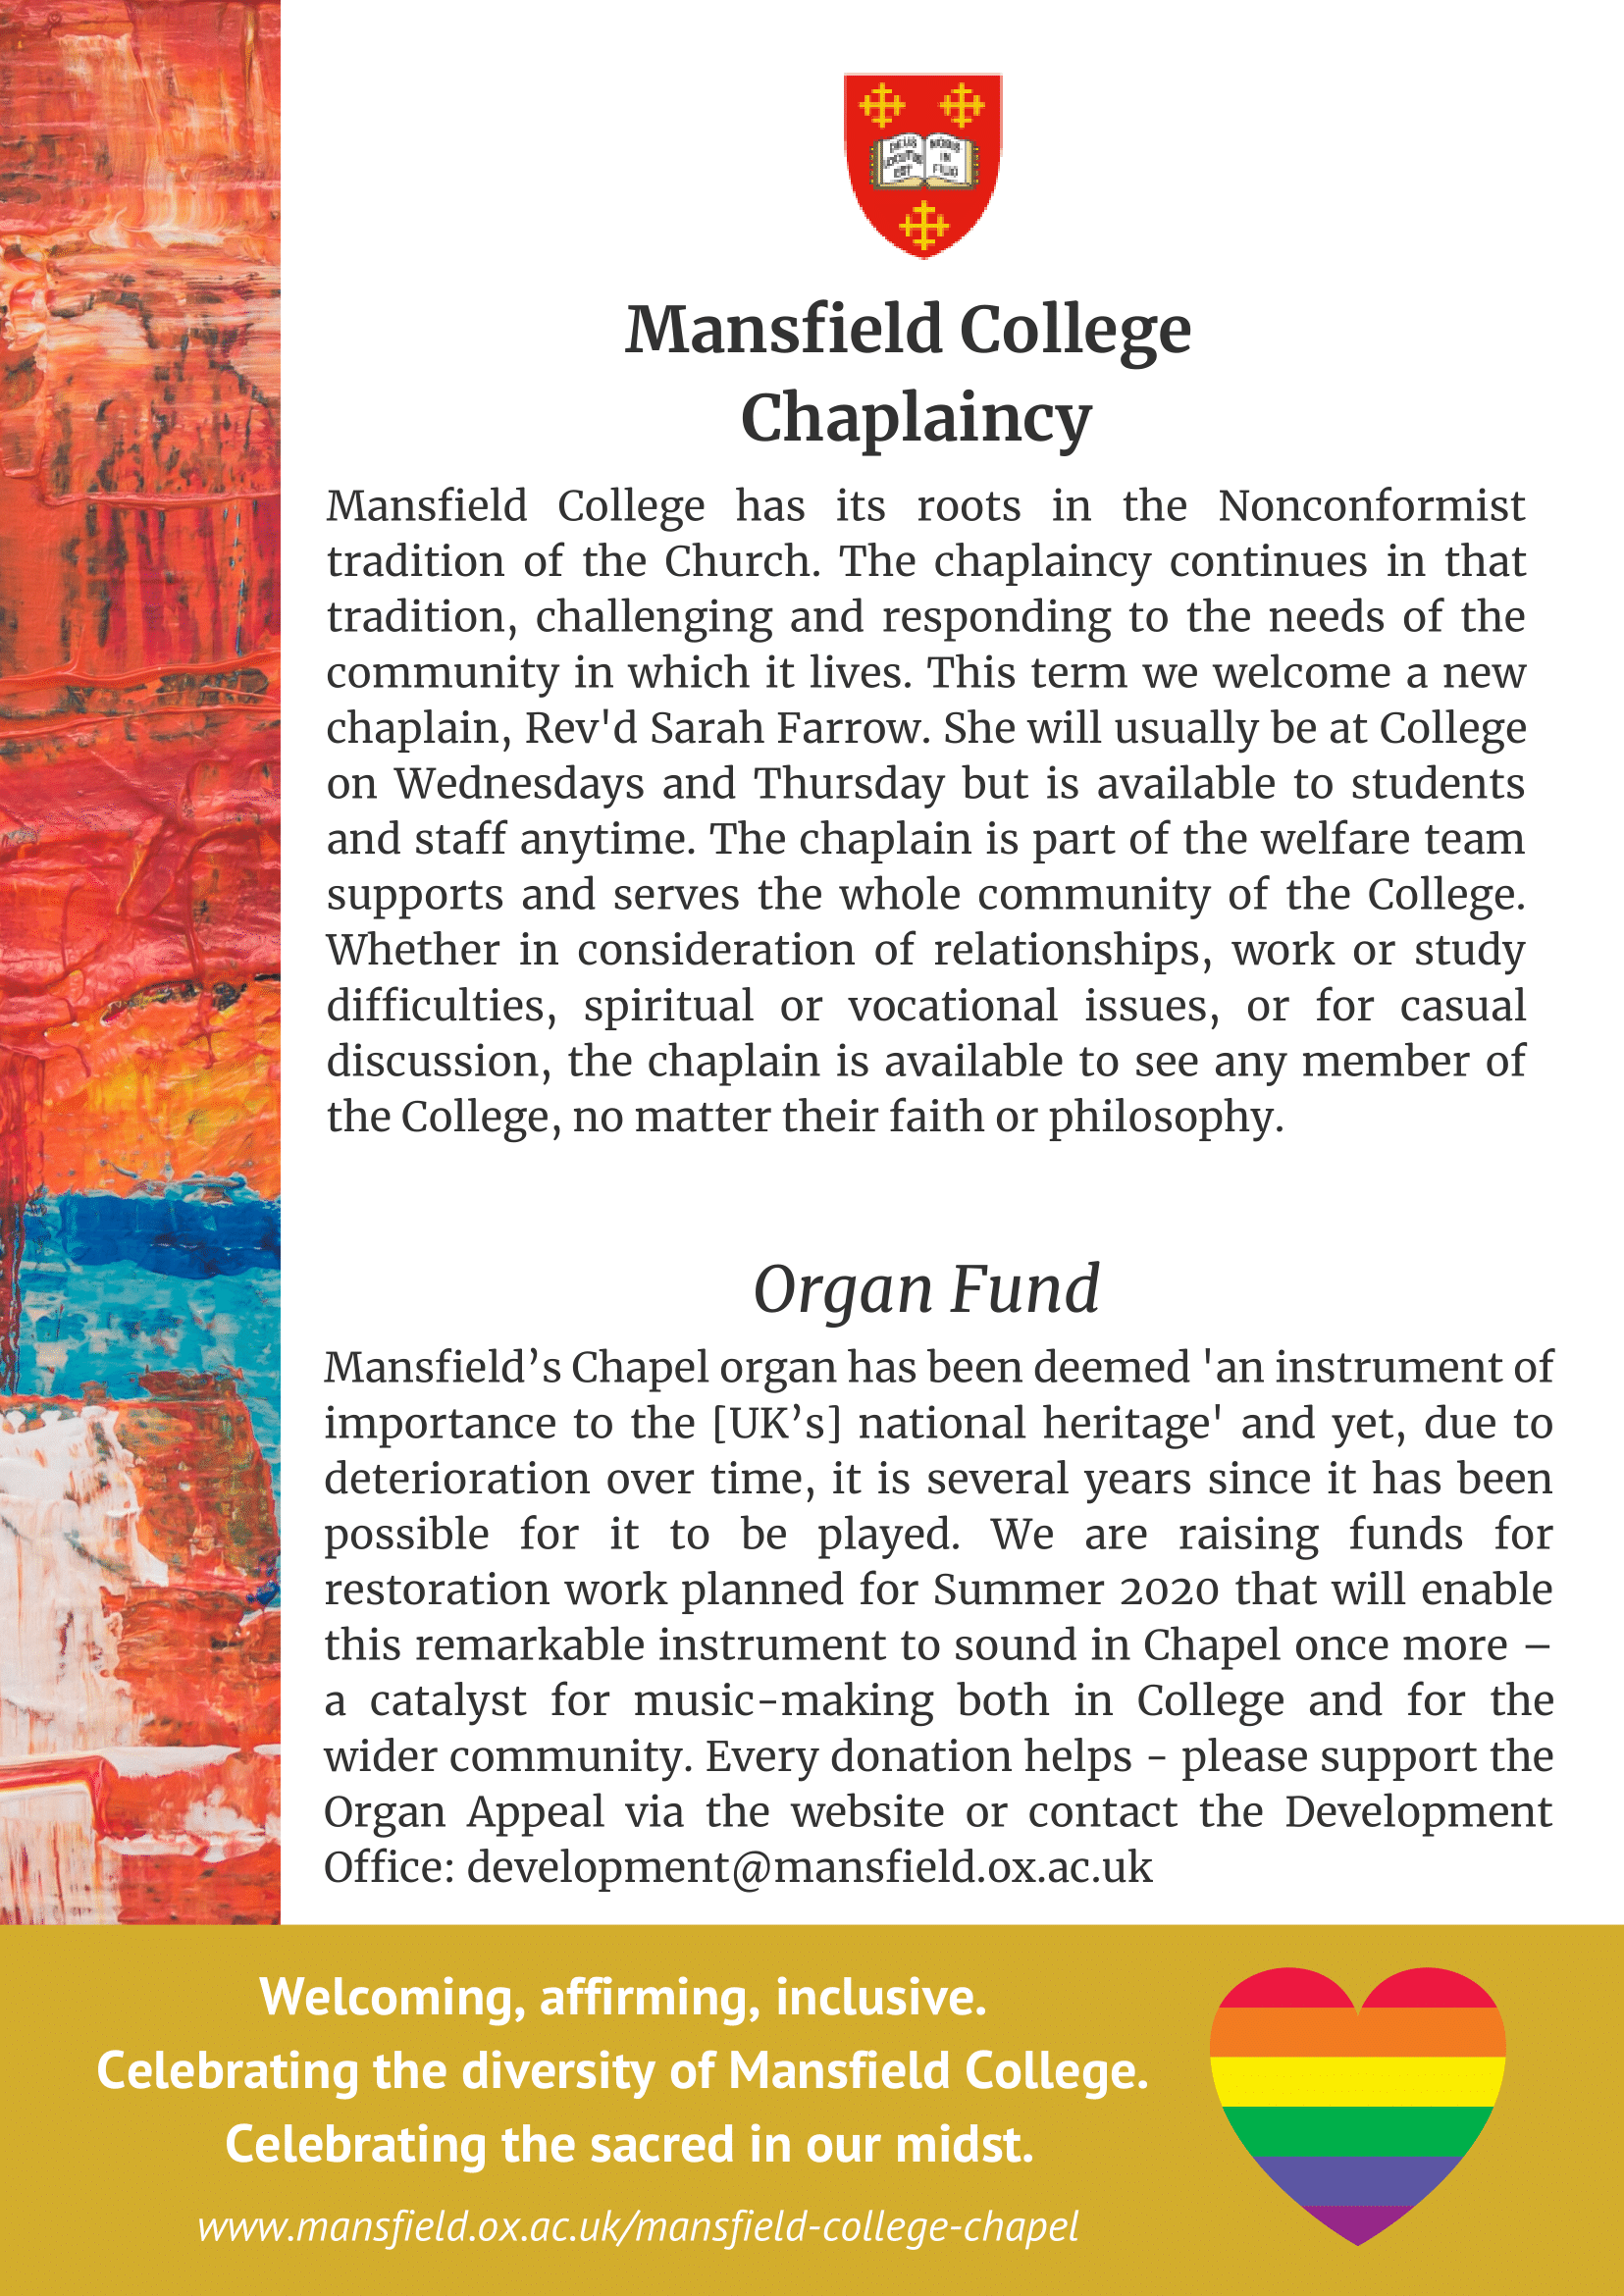 Mansfield College Chaplaincy